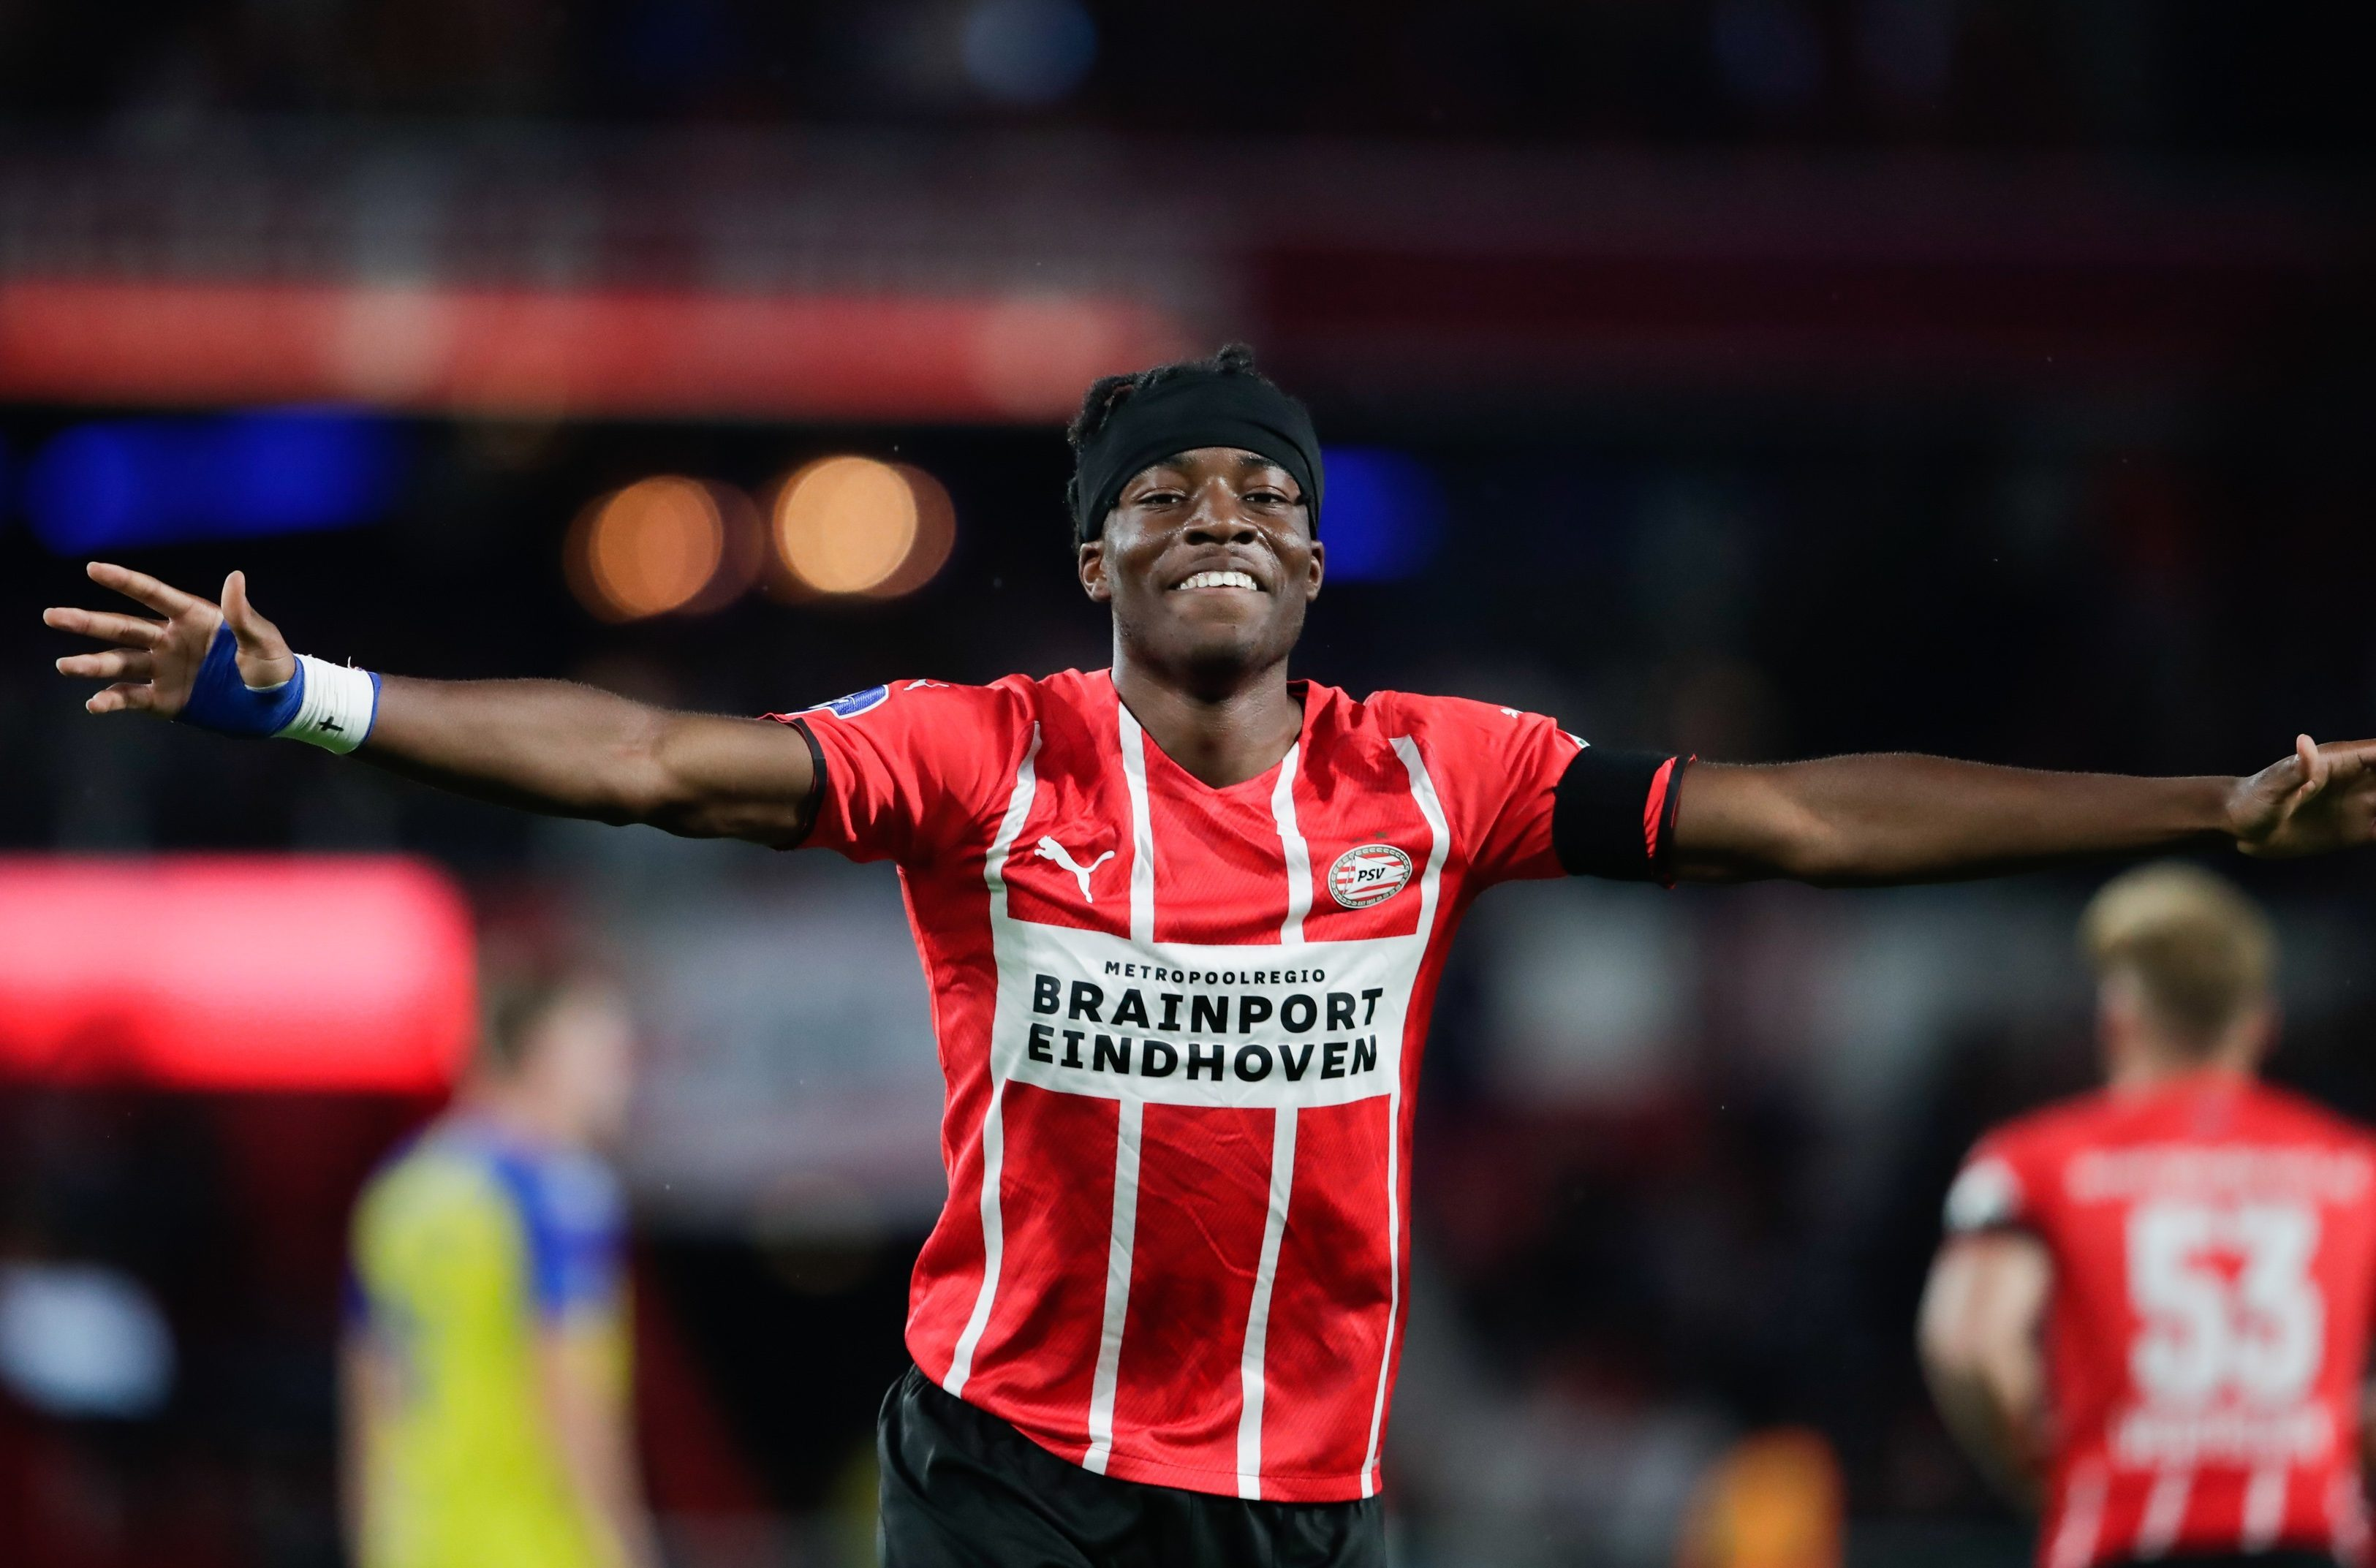 Madueke made his first senior appearance for PSV in August 2019 and is now a regular starter for them